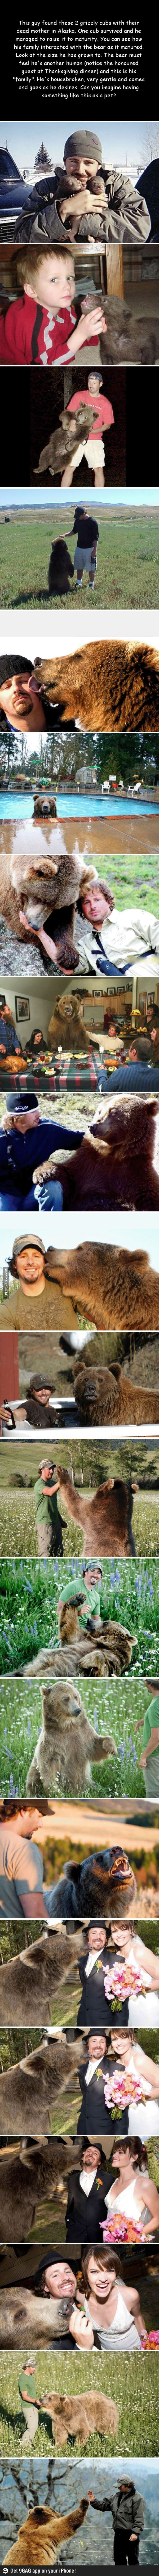 The story of a man and a bear. I want one!